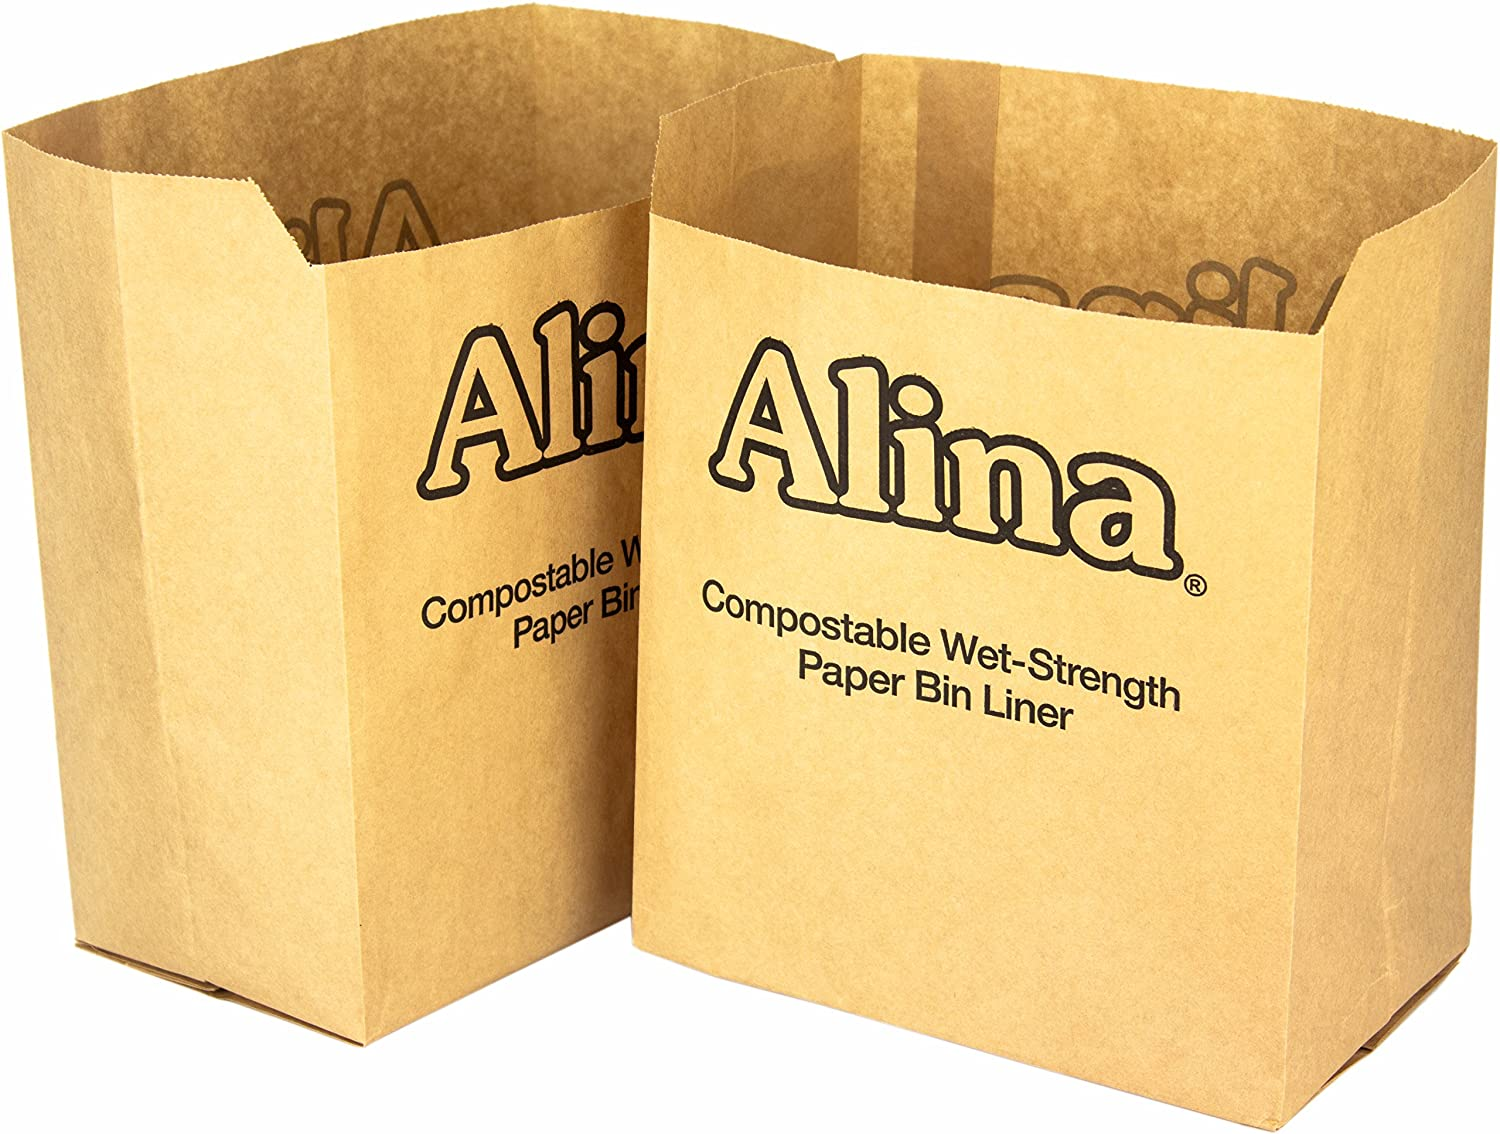 25 x Alina 6L to 8L Compostable Paper Caddy Bin Bag / Food Waste Bin Liner / Biodegradable Brown 7 Litre Paper Sack with Alina Composting Guide (25 bags)